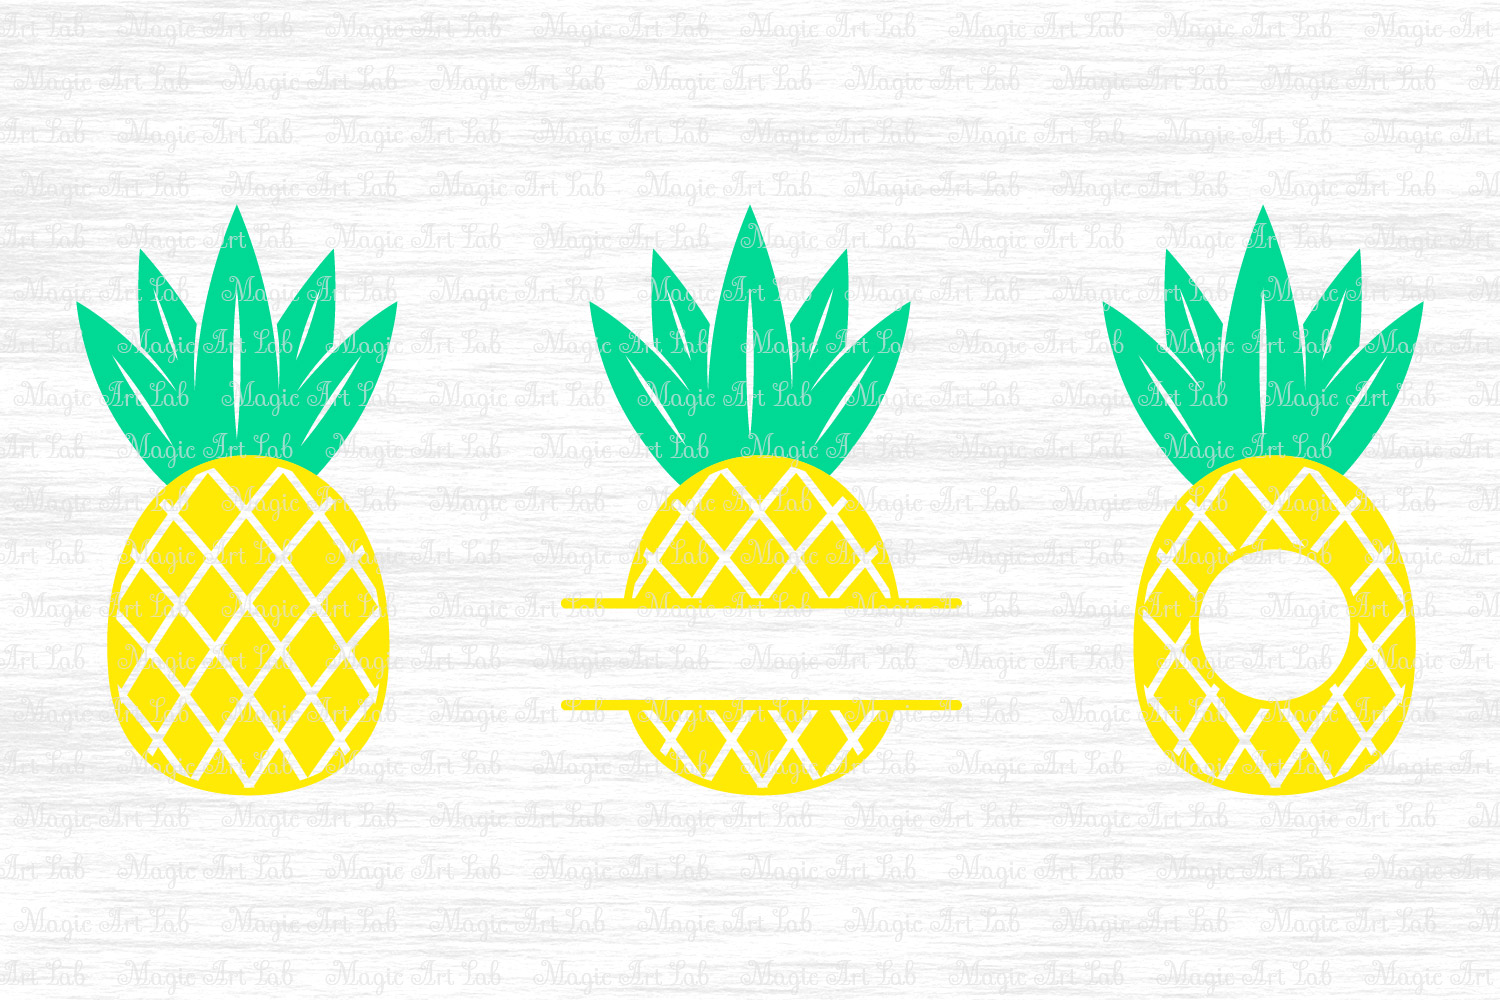 pineapple monogram svg free #276, Download drawings